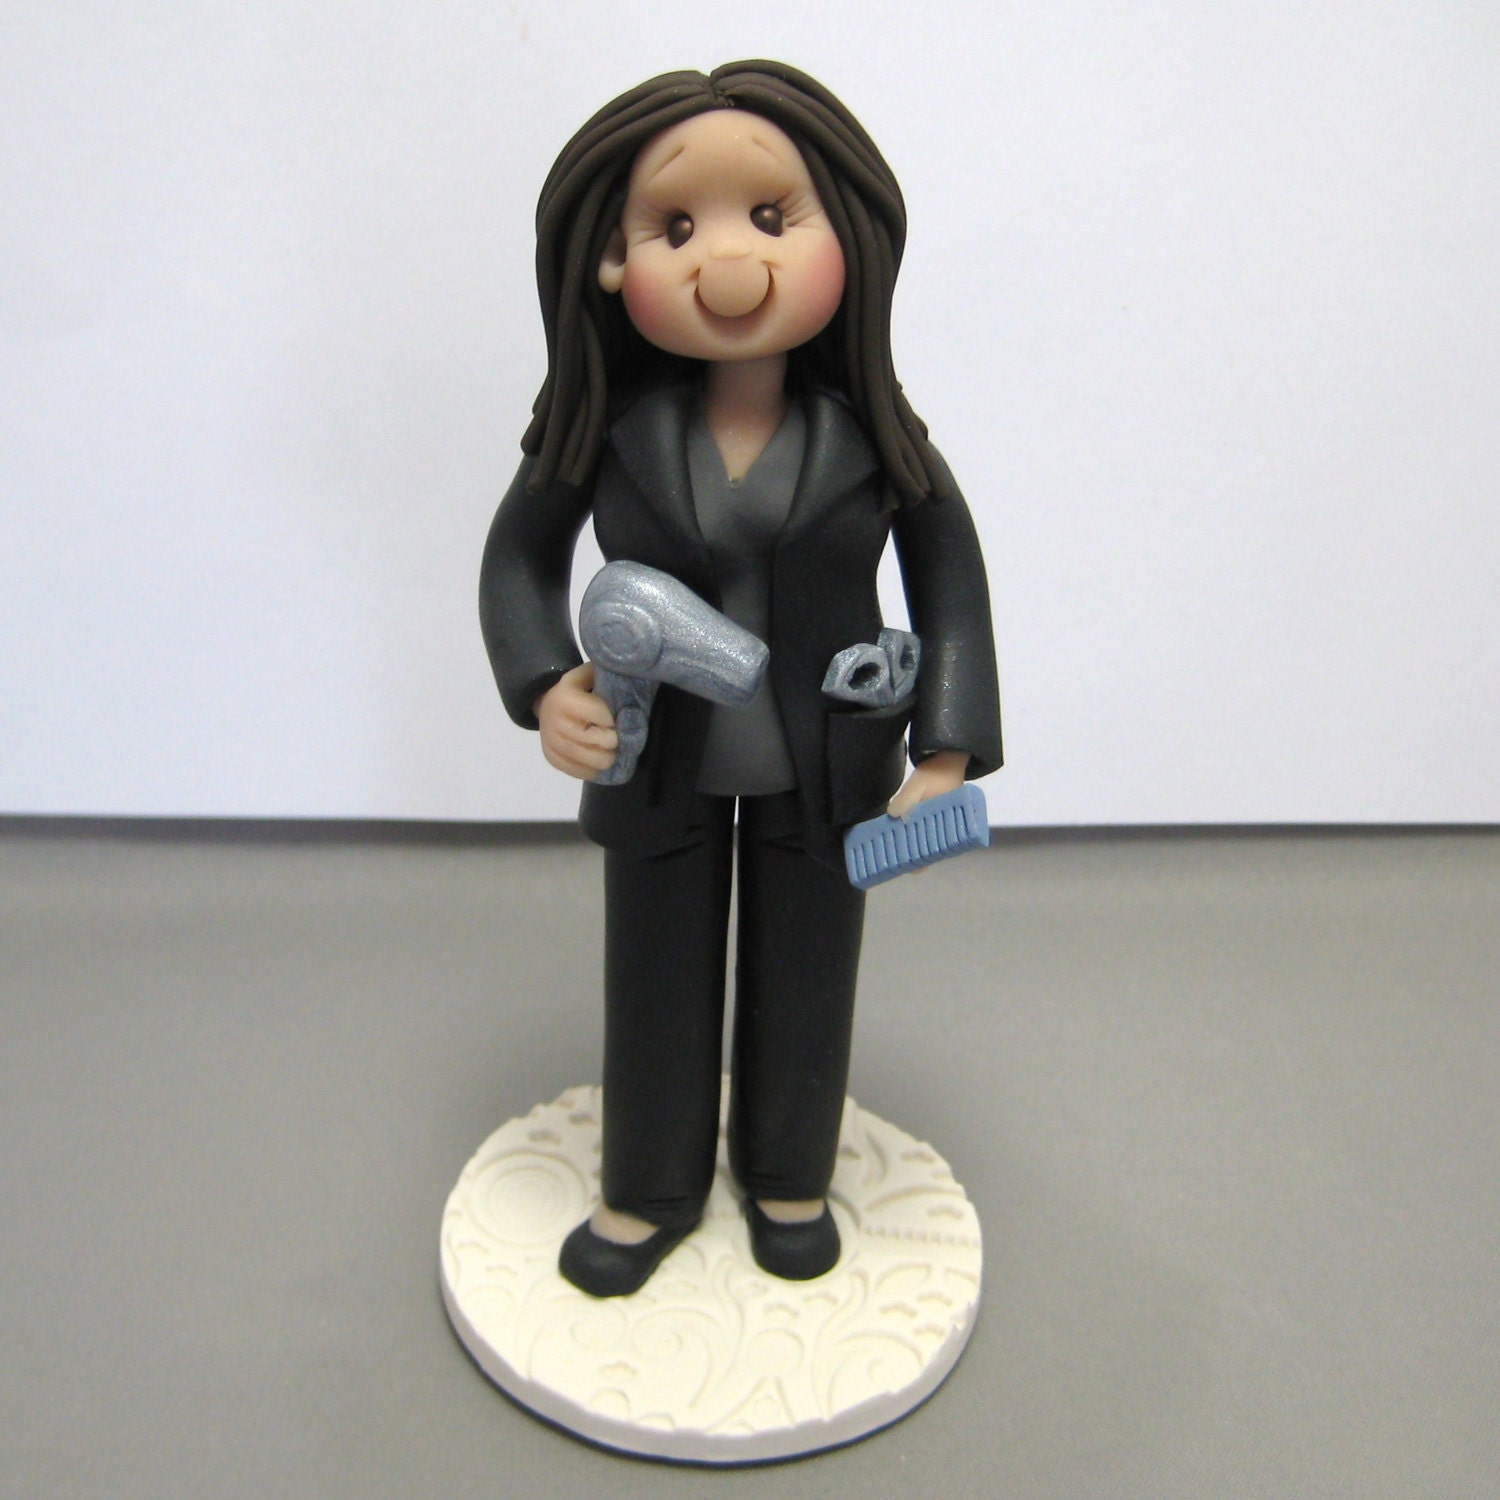 Scissors And Hairdryer Cake Topper